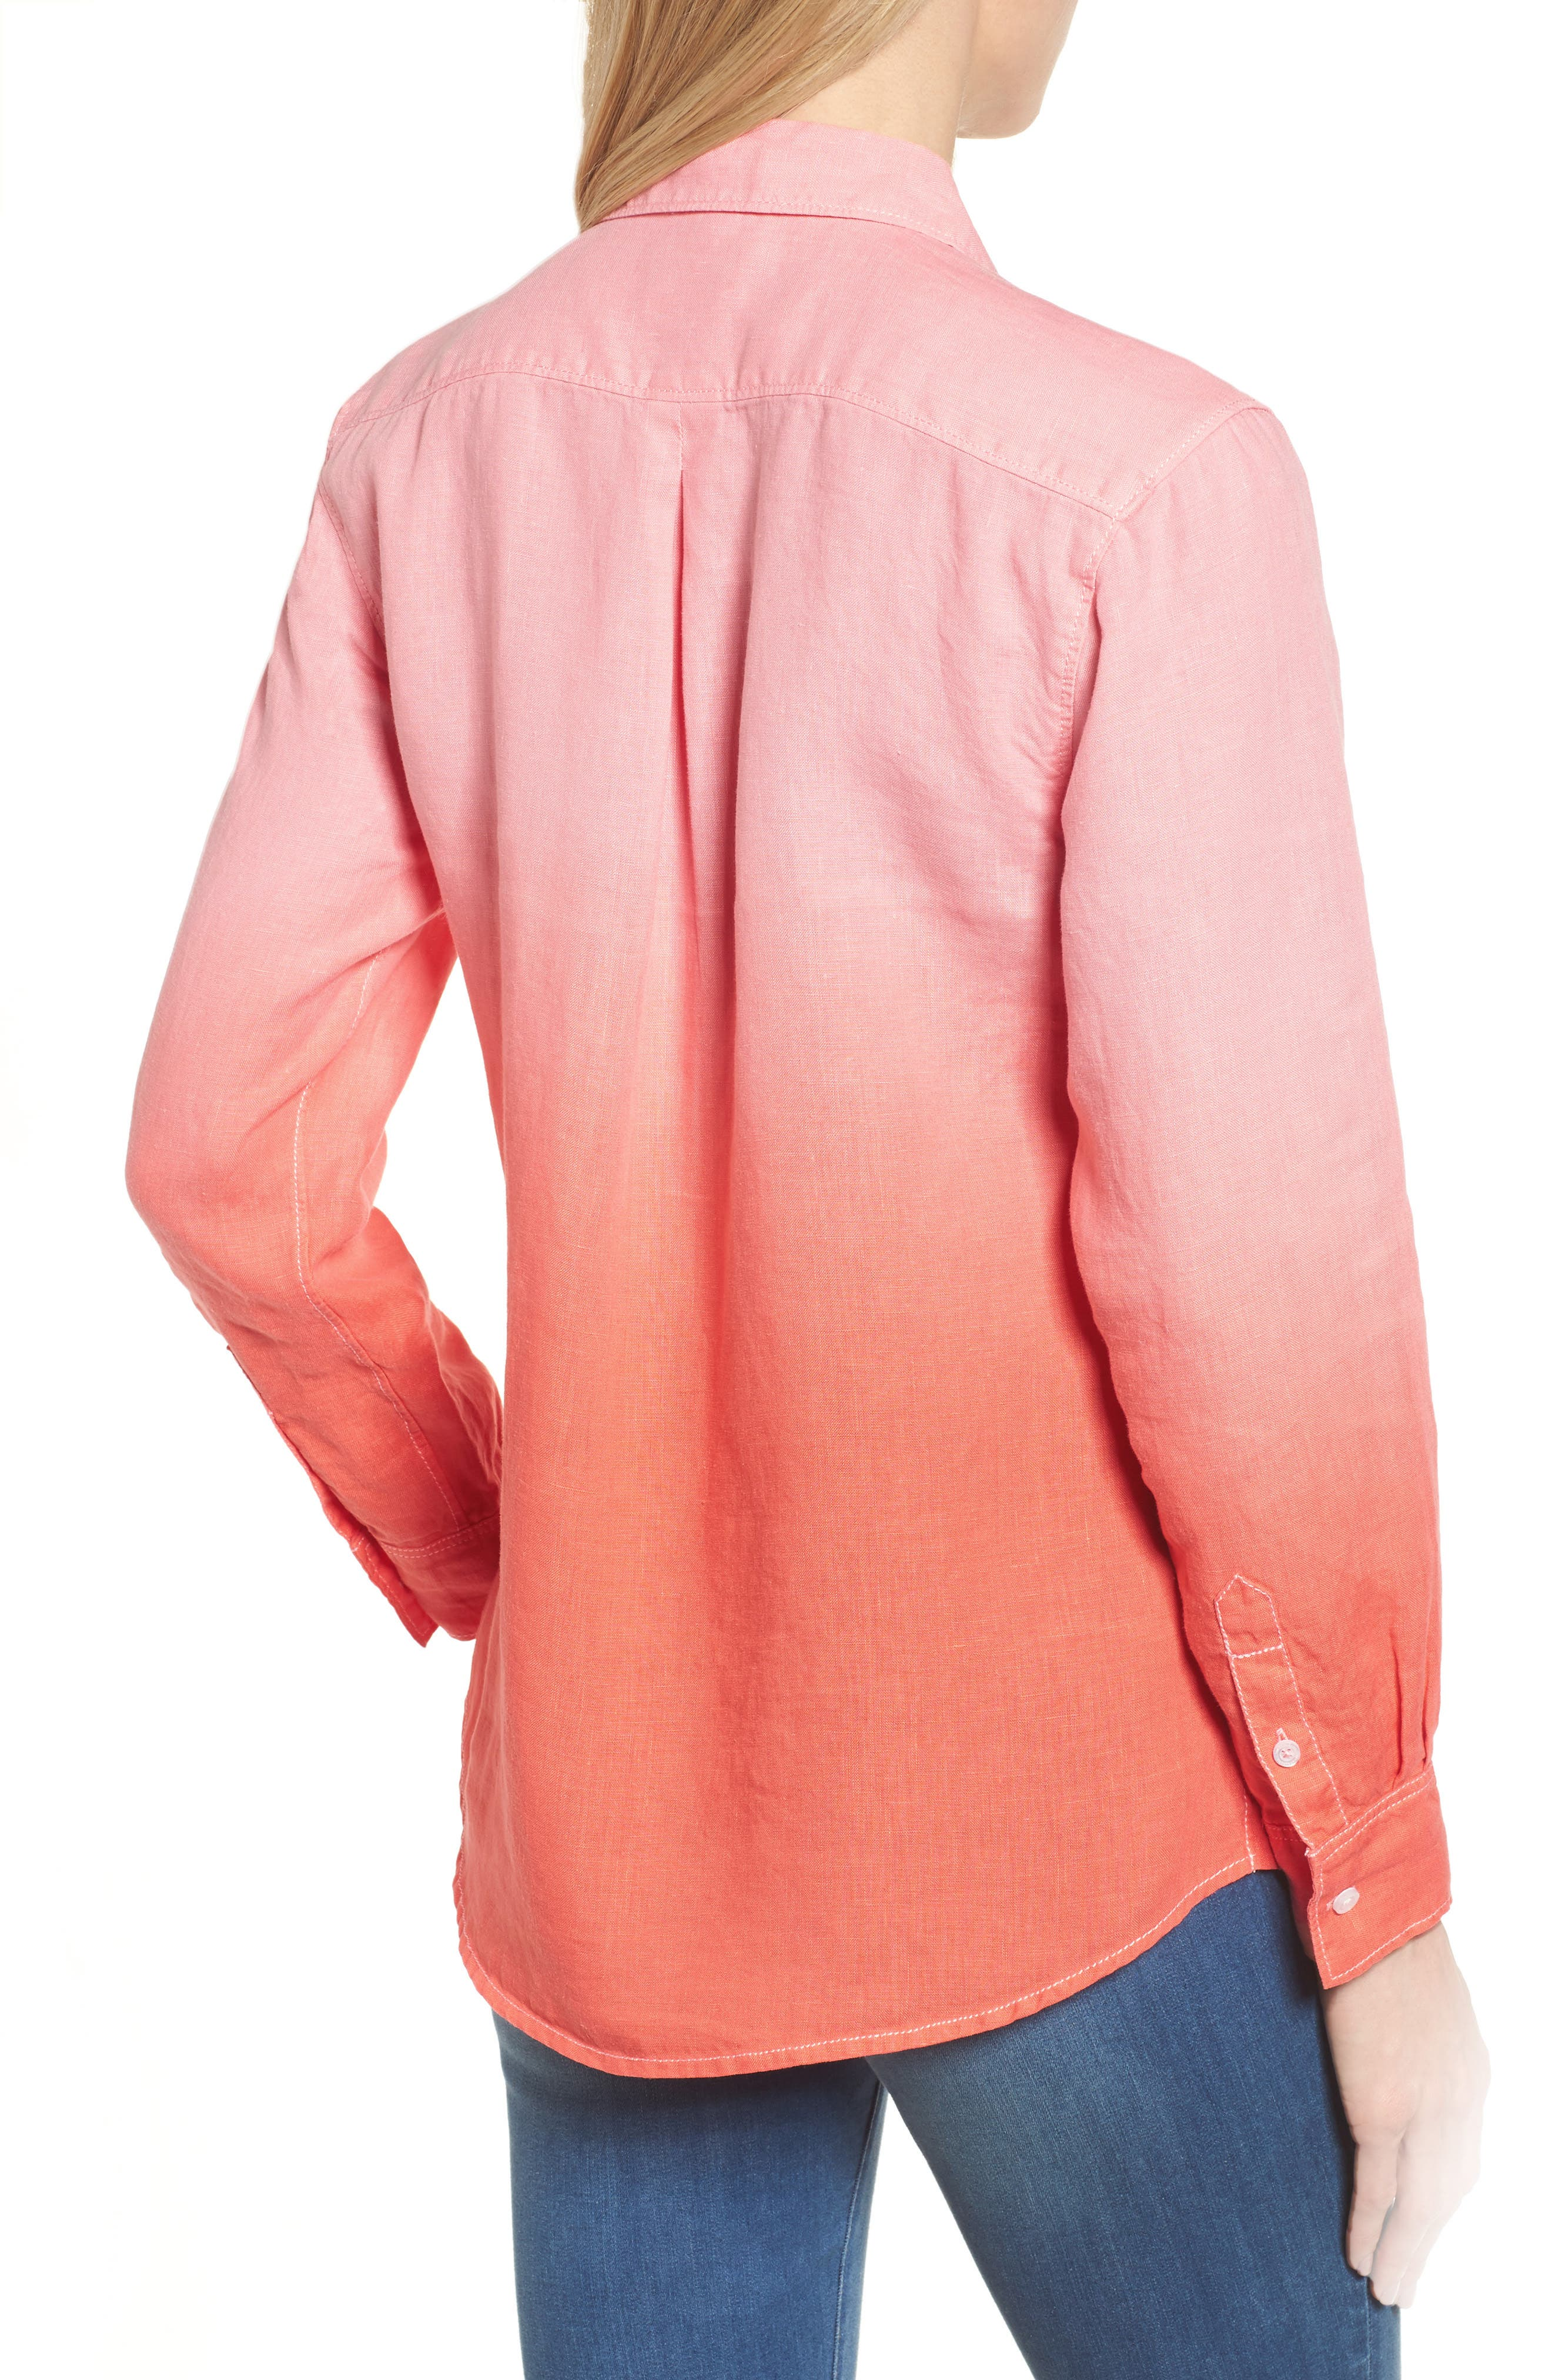 Two Palms Dip Dye Top,                             Alternate thumbnail 2, color,                             CABANA PINK/ BURNT CORAL